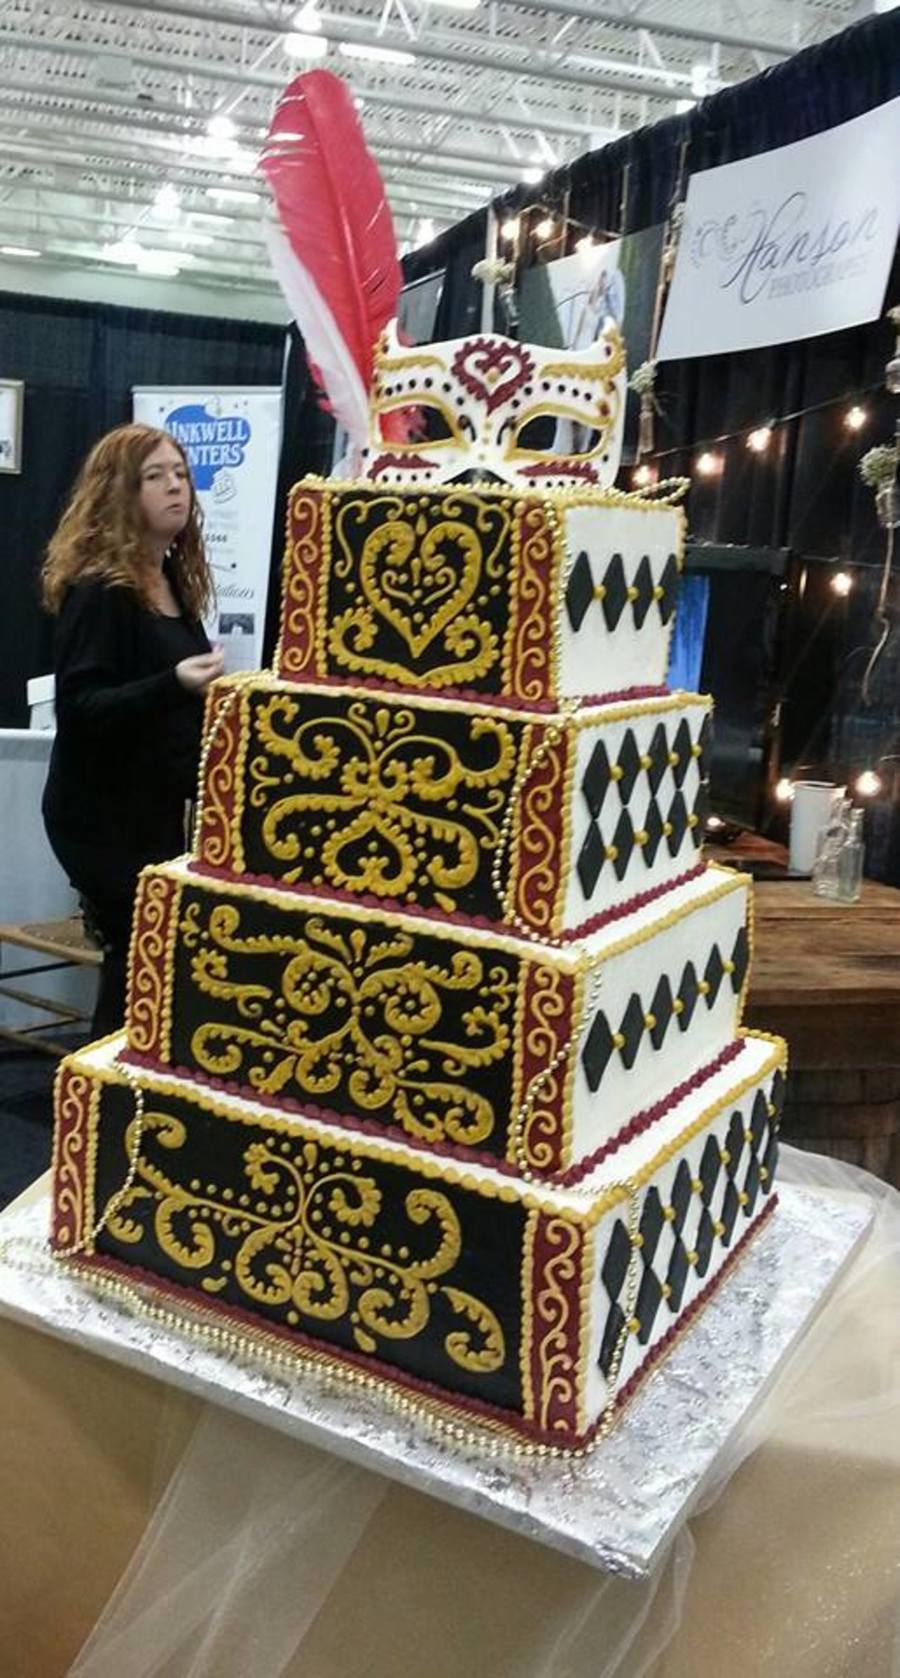 Masquerade Themed Wedding Cake Displayed At The 2014 Wedding Planner And Guide Bridal Show Made Mainly With Buttercream The Harlequin Di on Cake Central